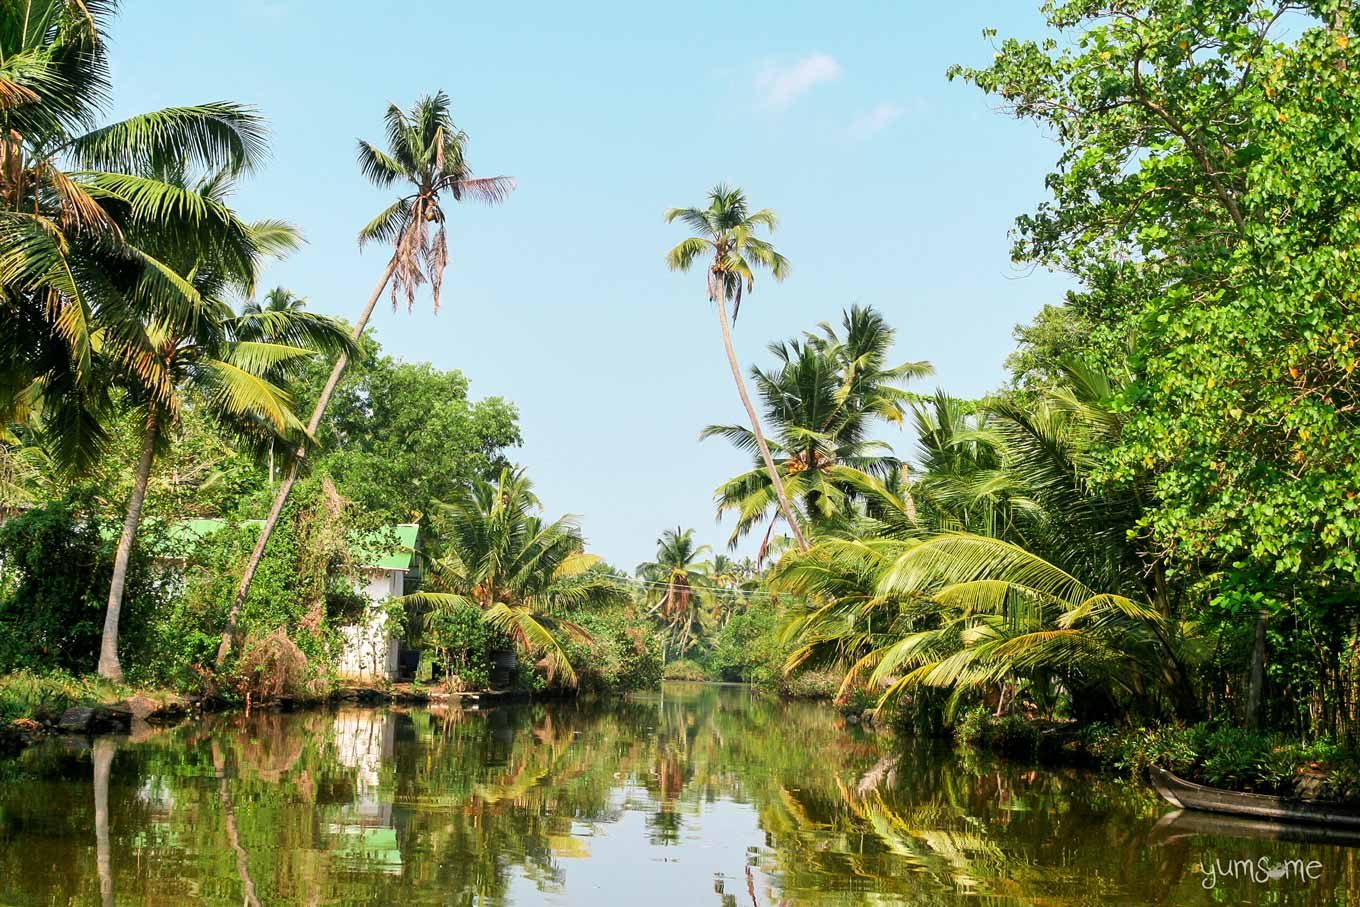 Alappuzha backwaters as seen from a boat.